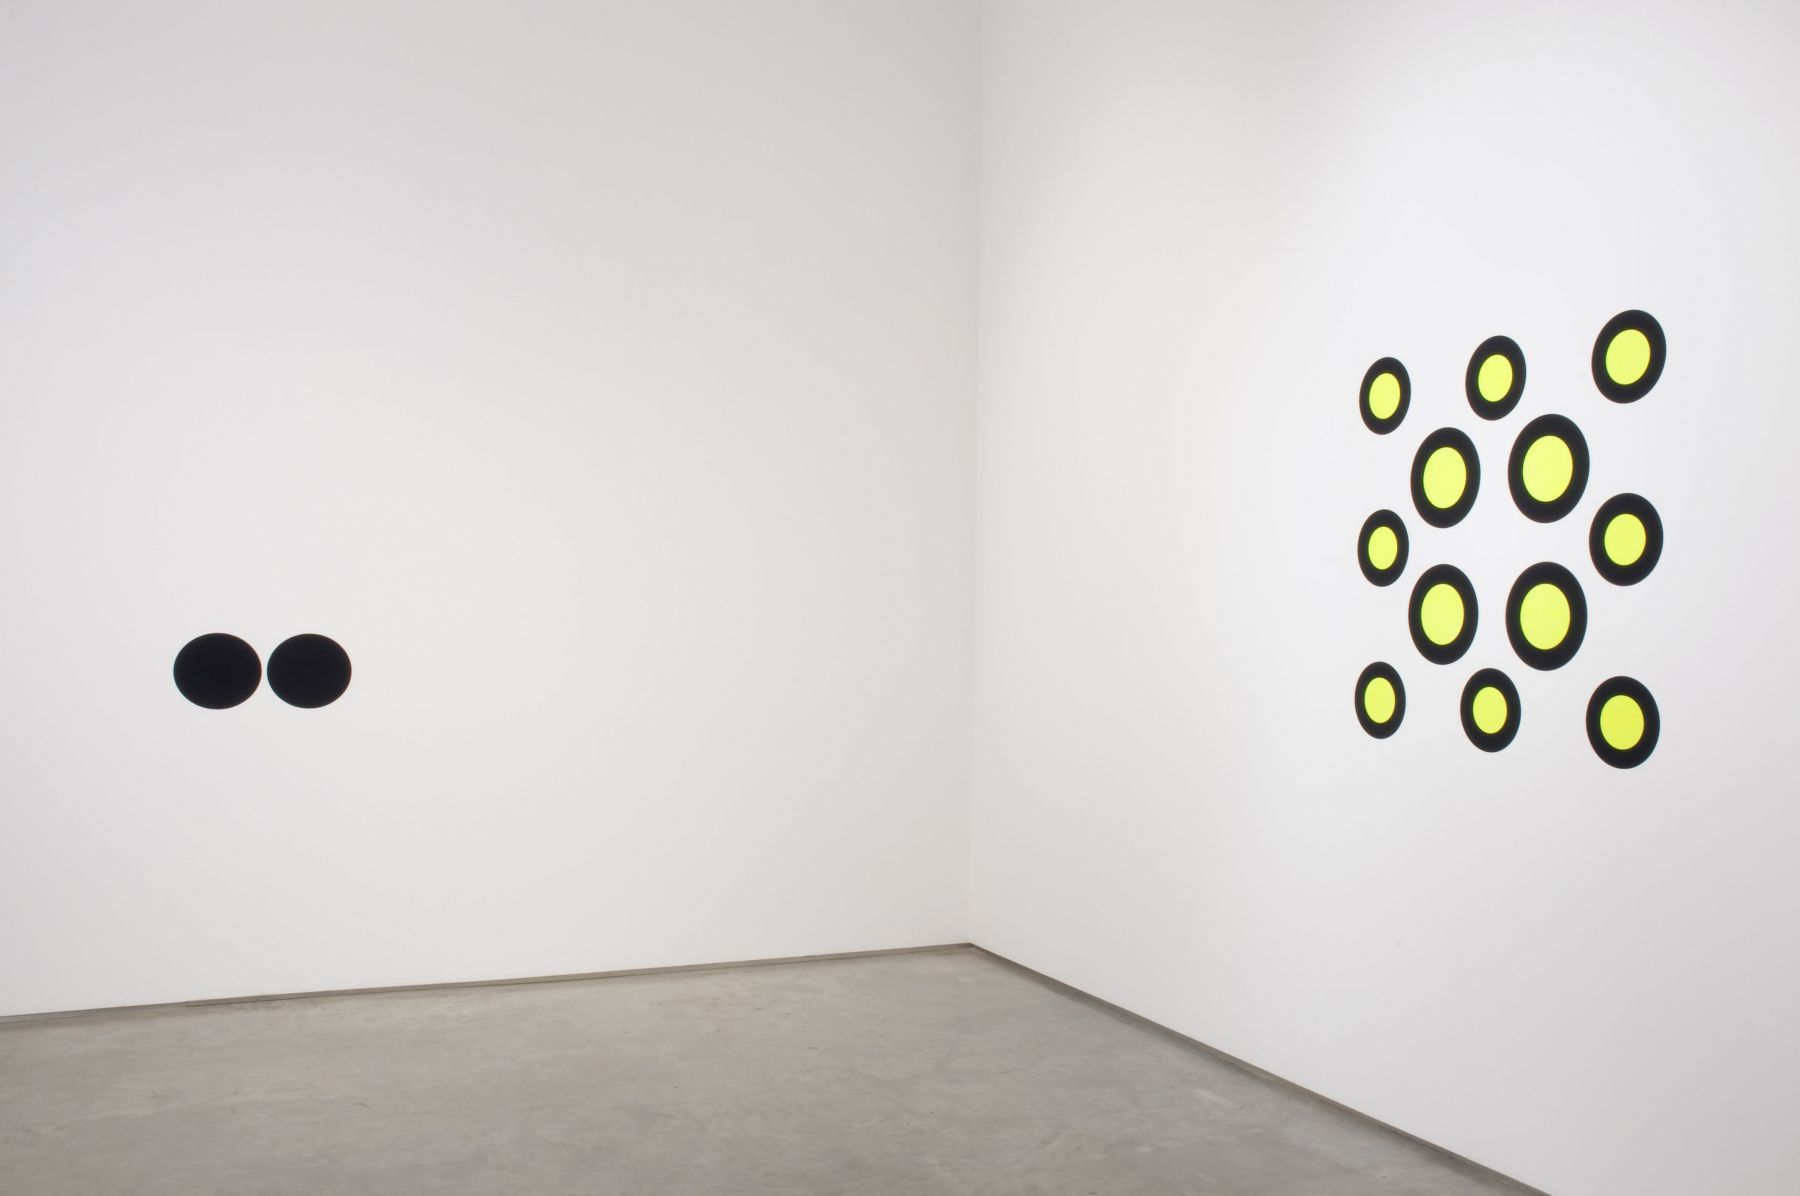 yellow and black dots painted on wall by neil campbell